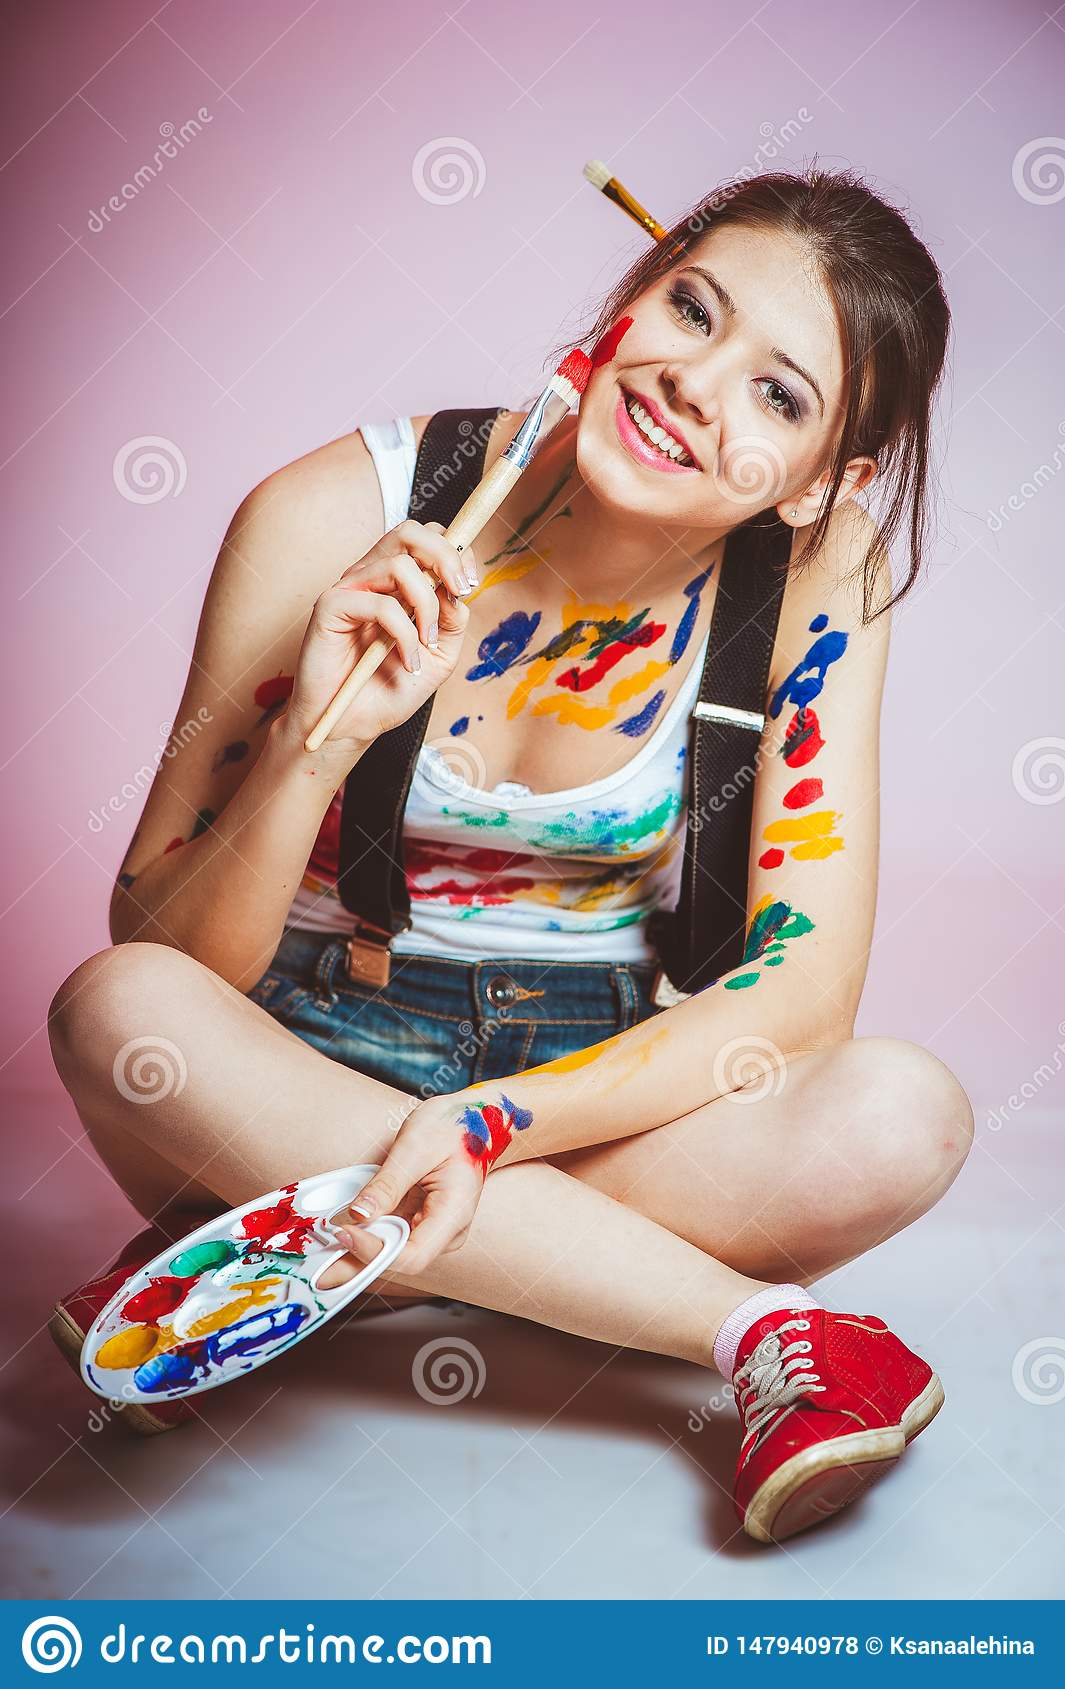 A young girl is stained with paint.